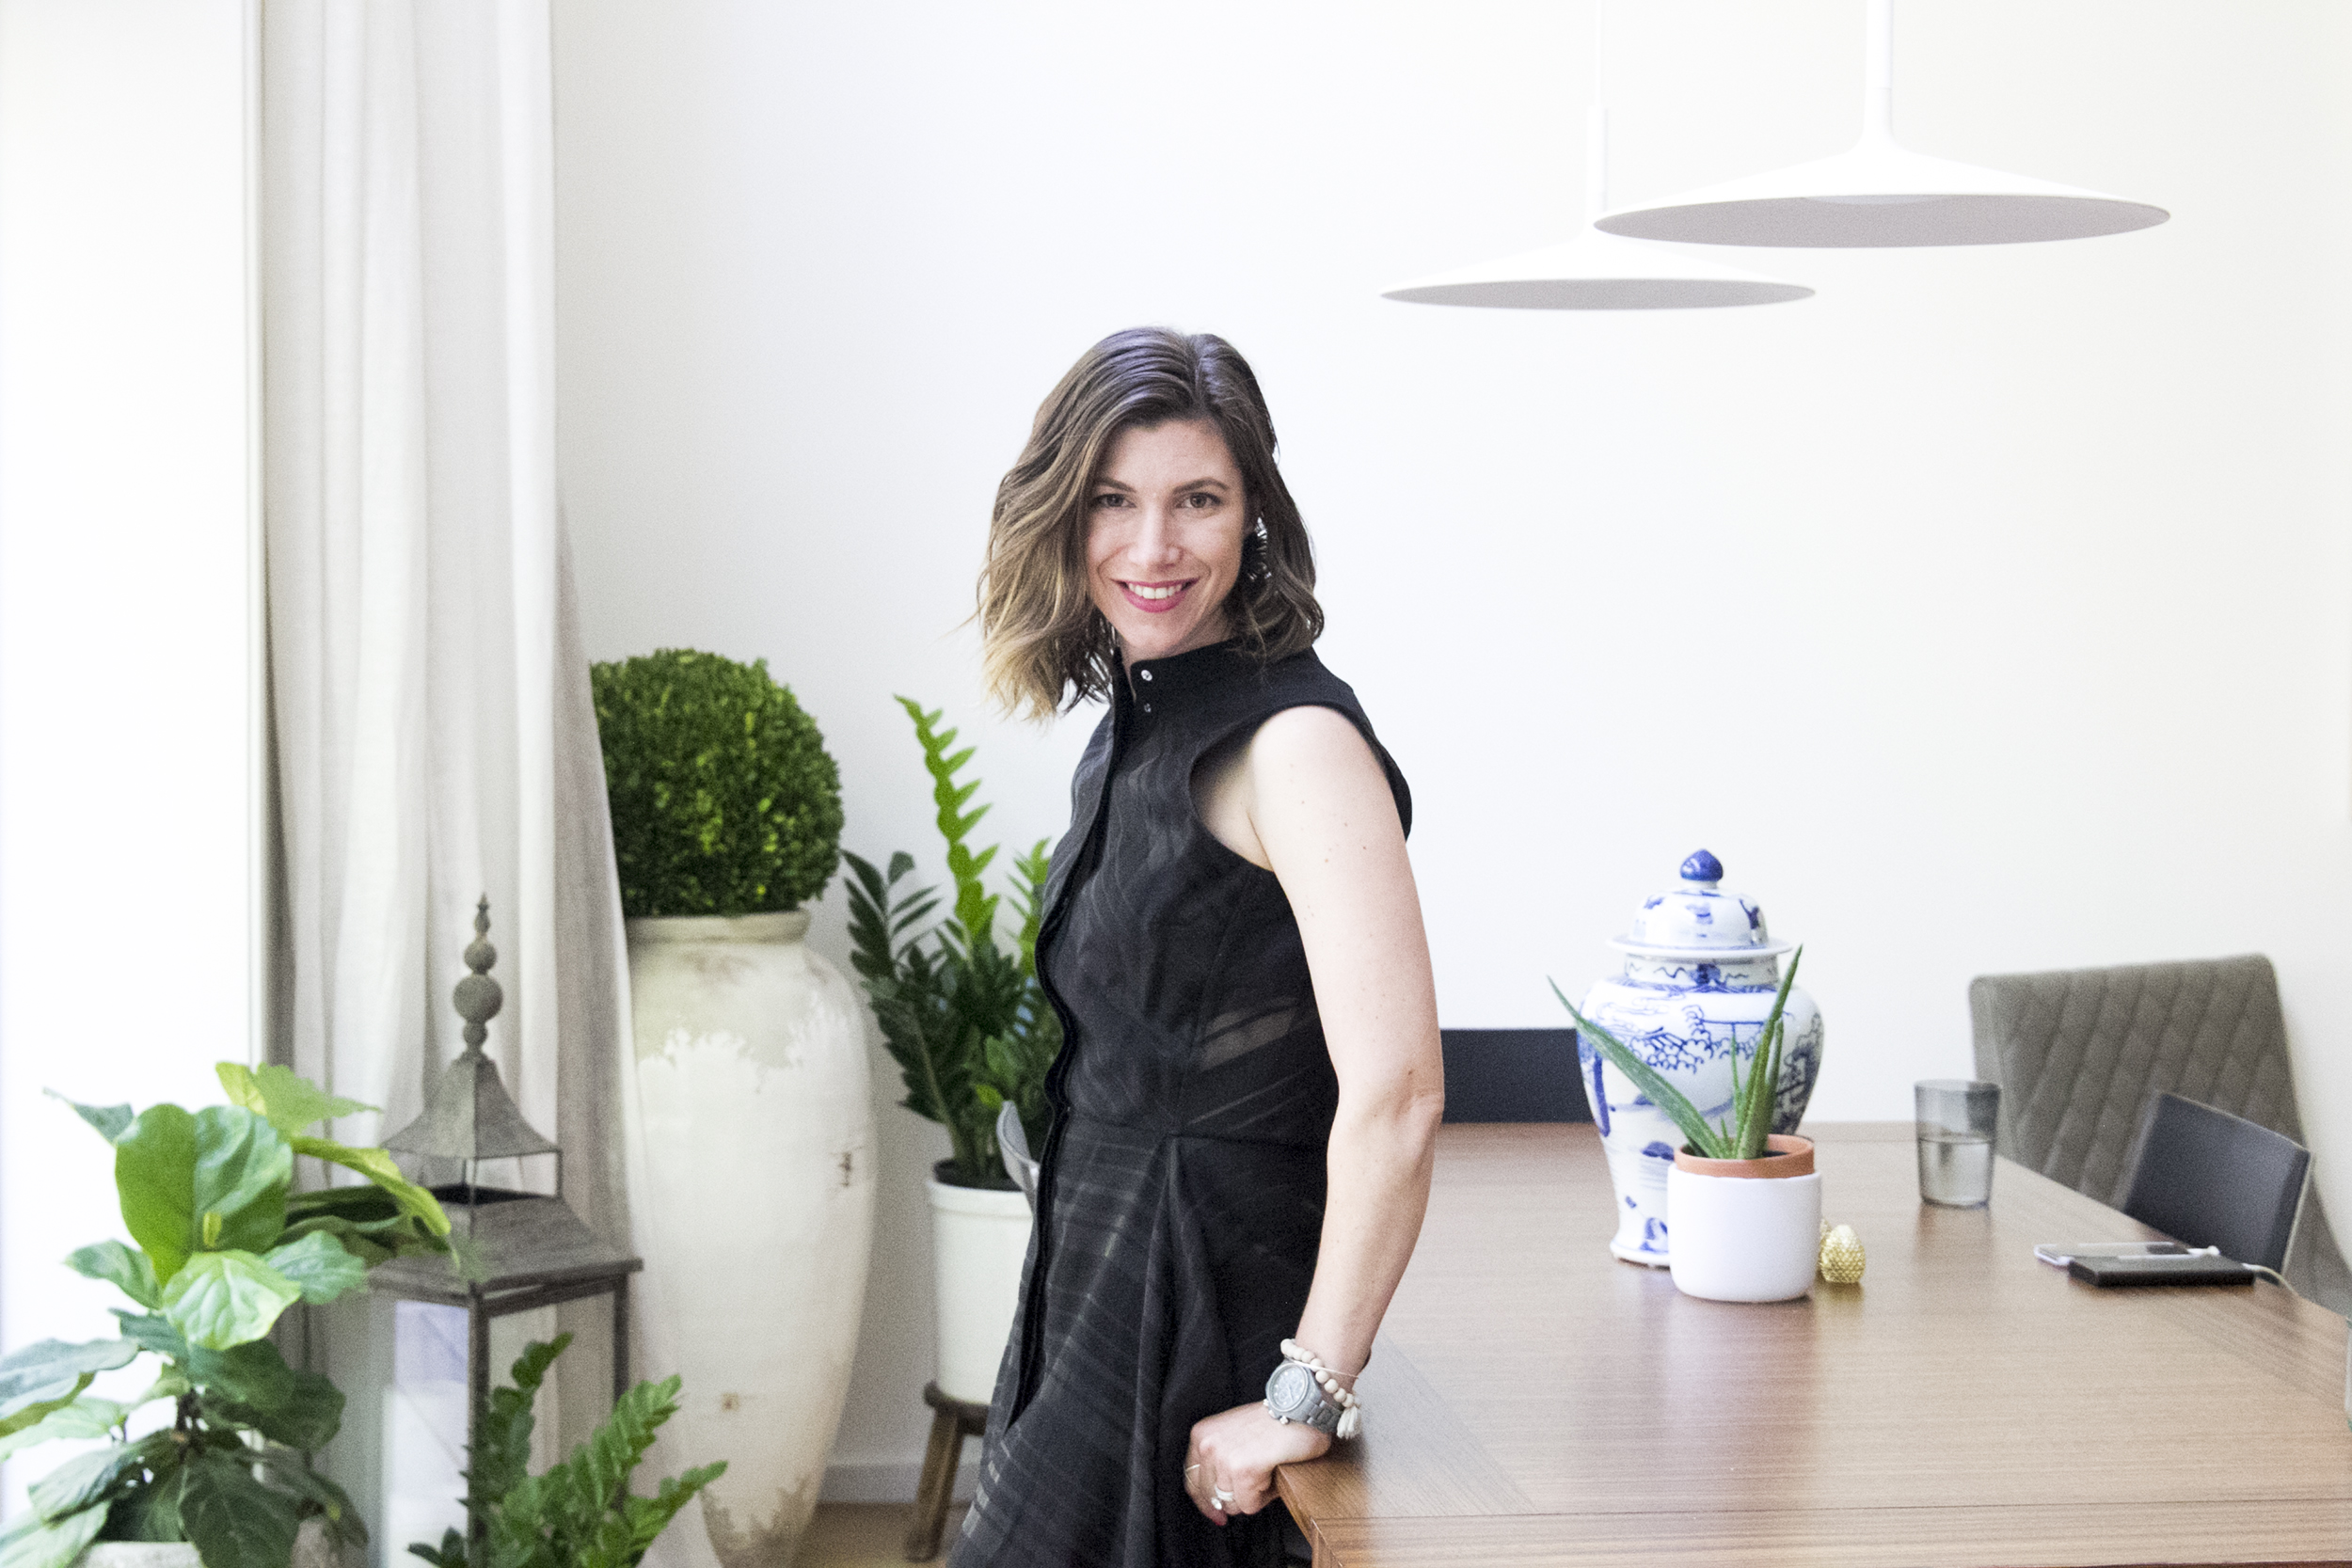 How to develop a new business strategy by Mason Lane founder Katharine Earnhardt on The Lifestyle Edit